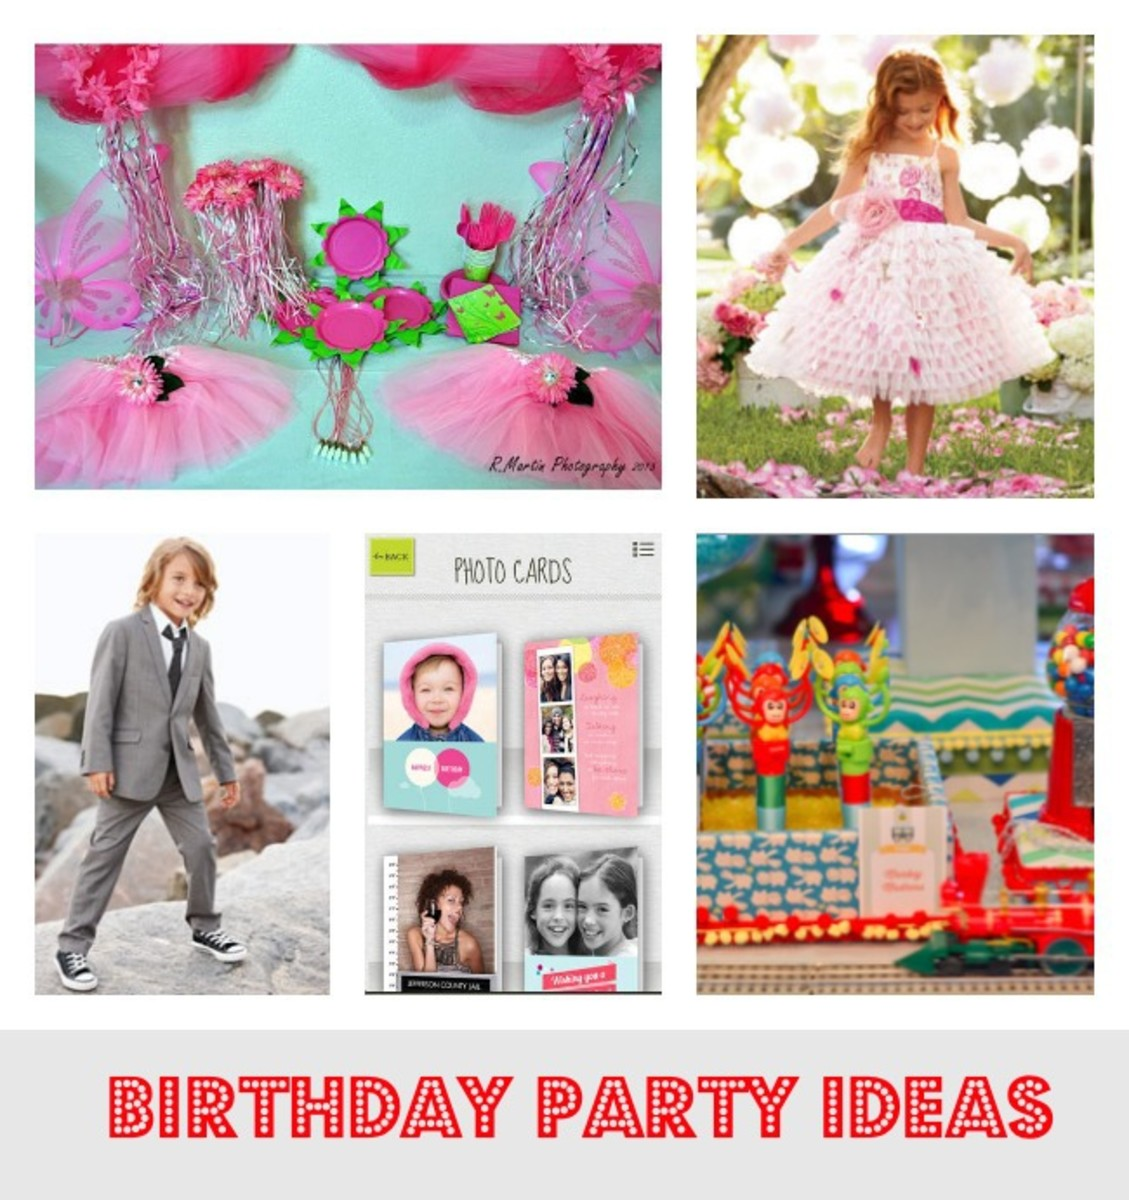 Birthday Party Ideas.jpg.jpg